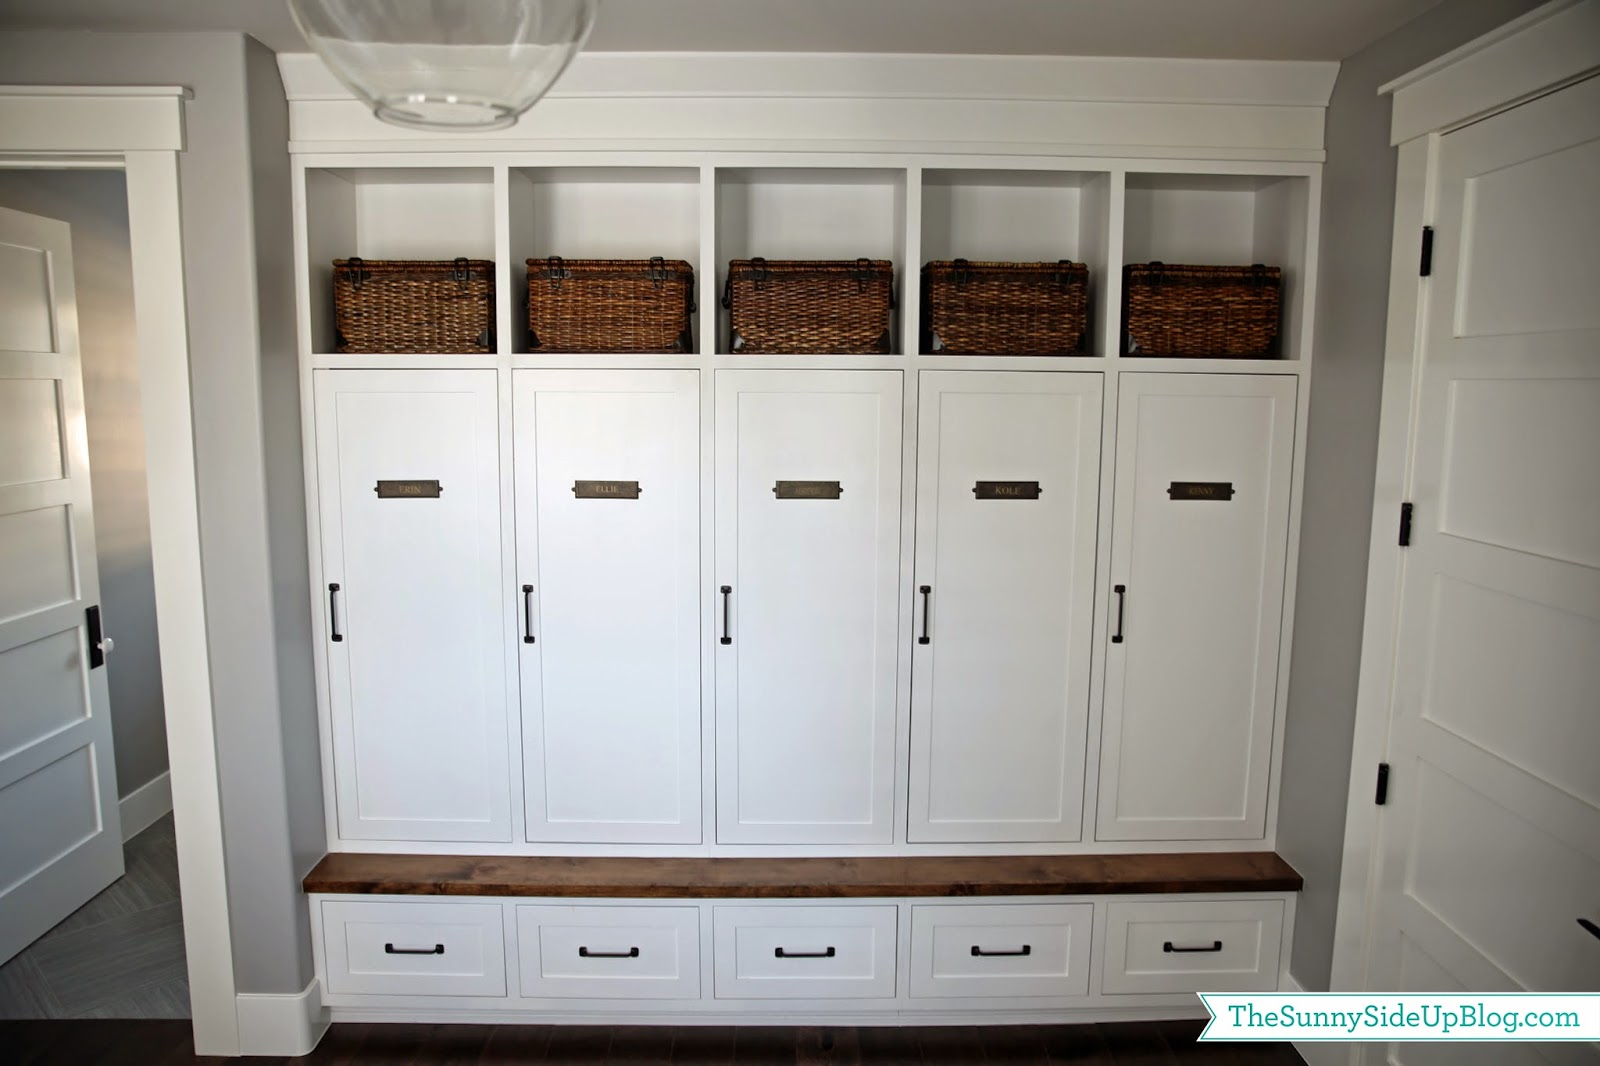 Mudroom lockers with doors - My New Organized Mudroom